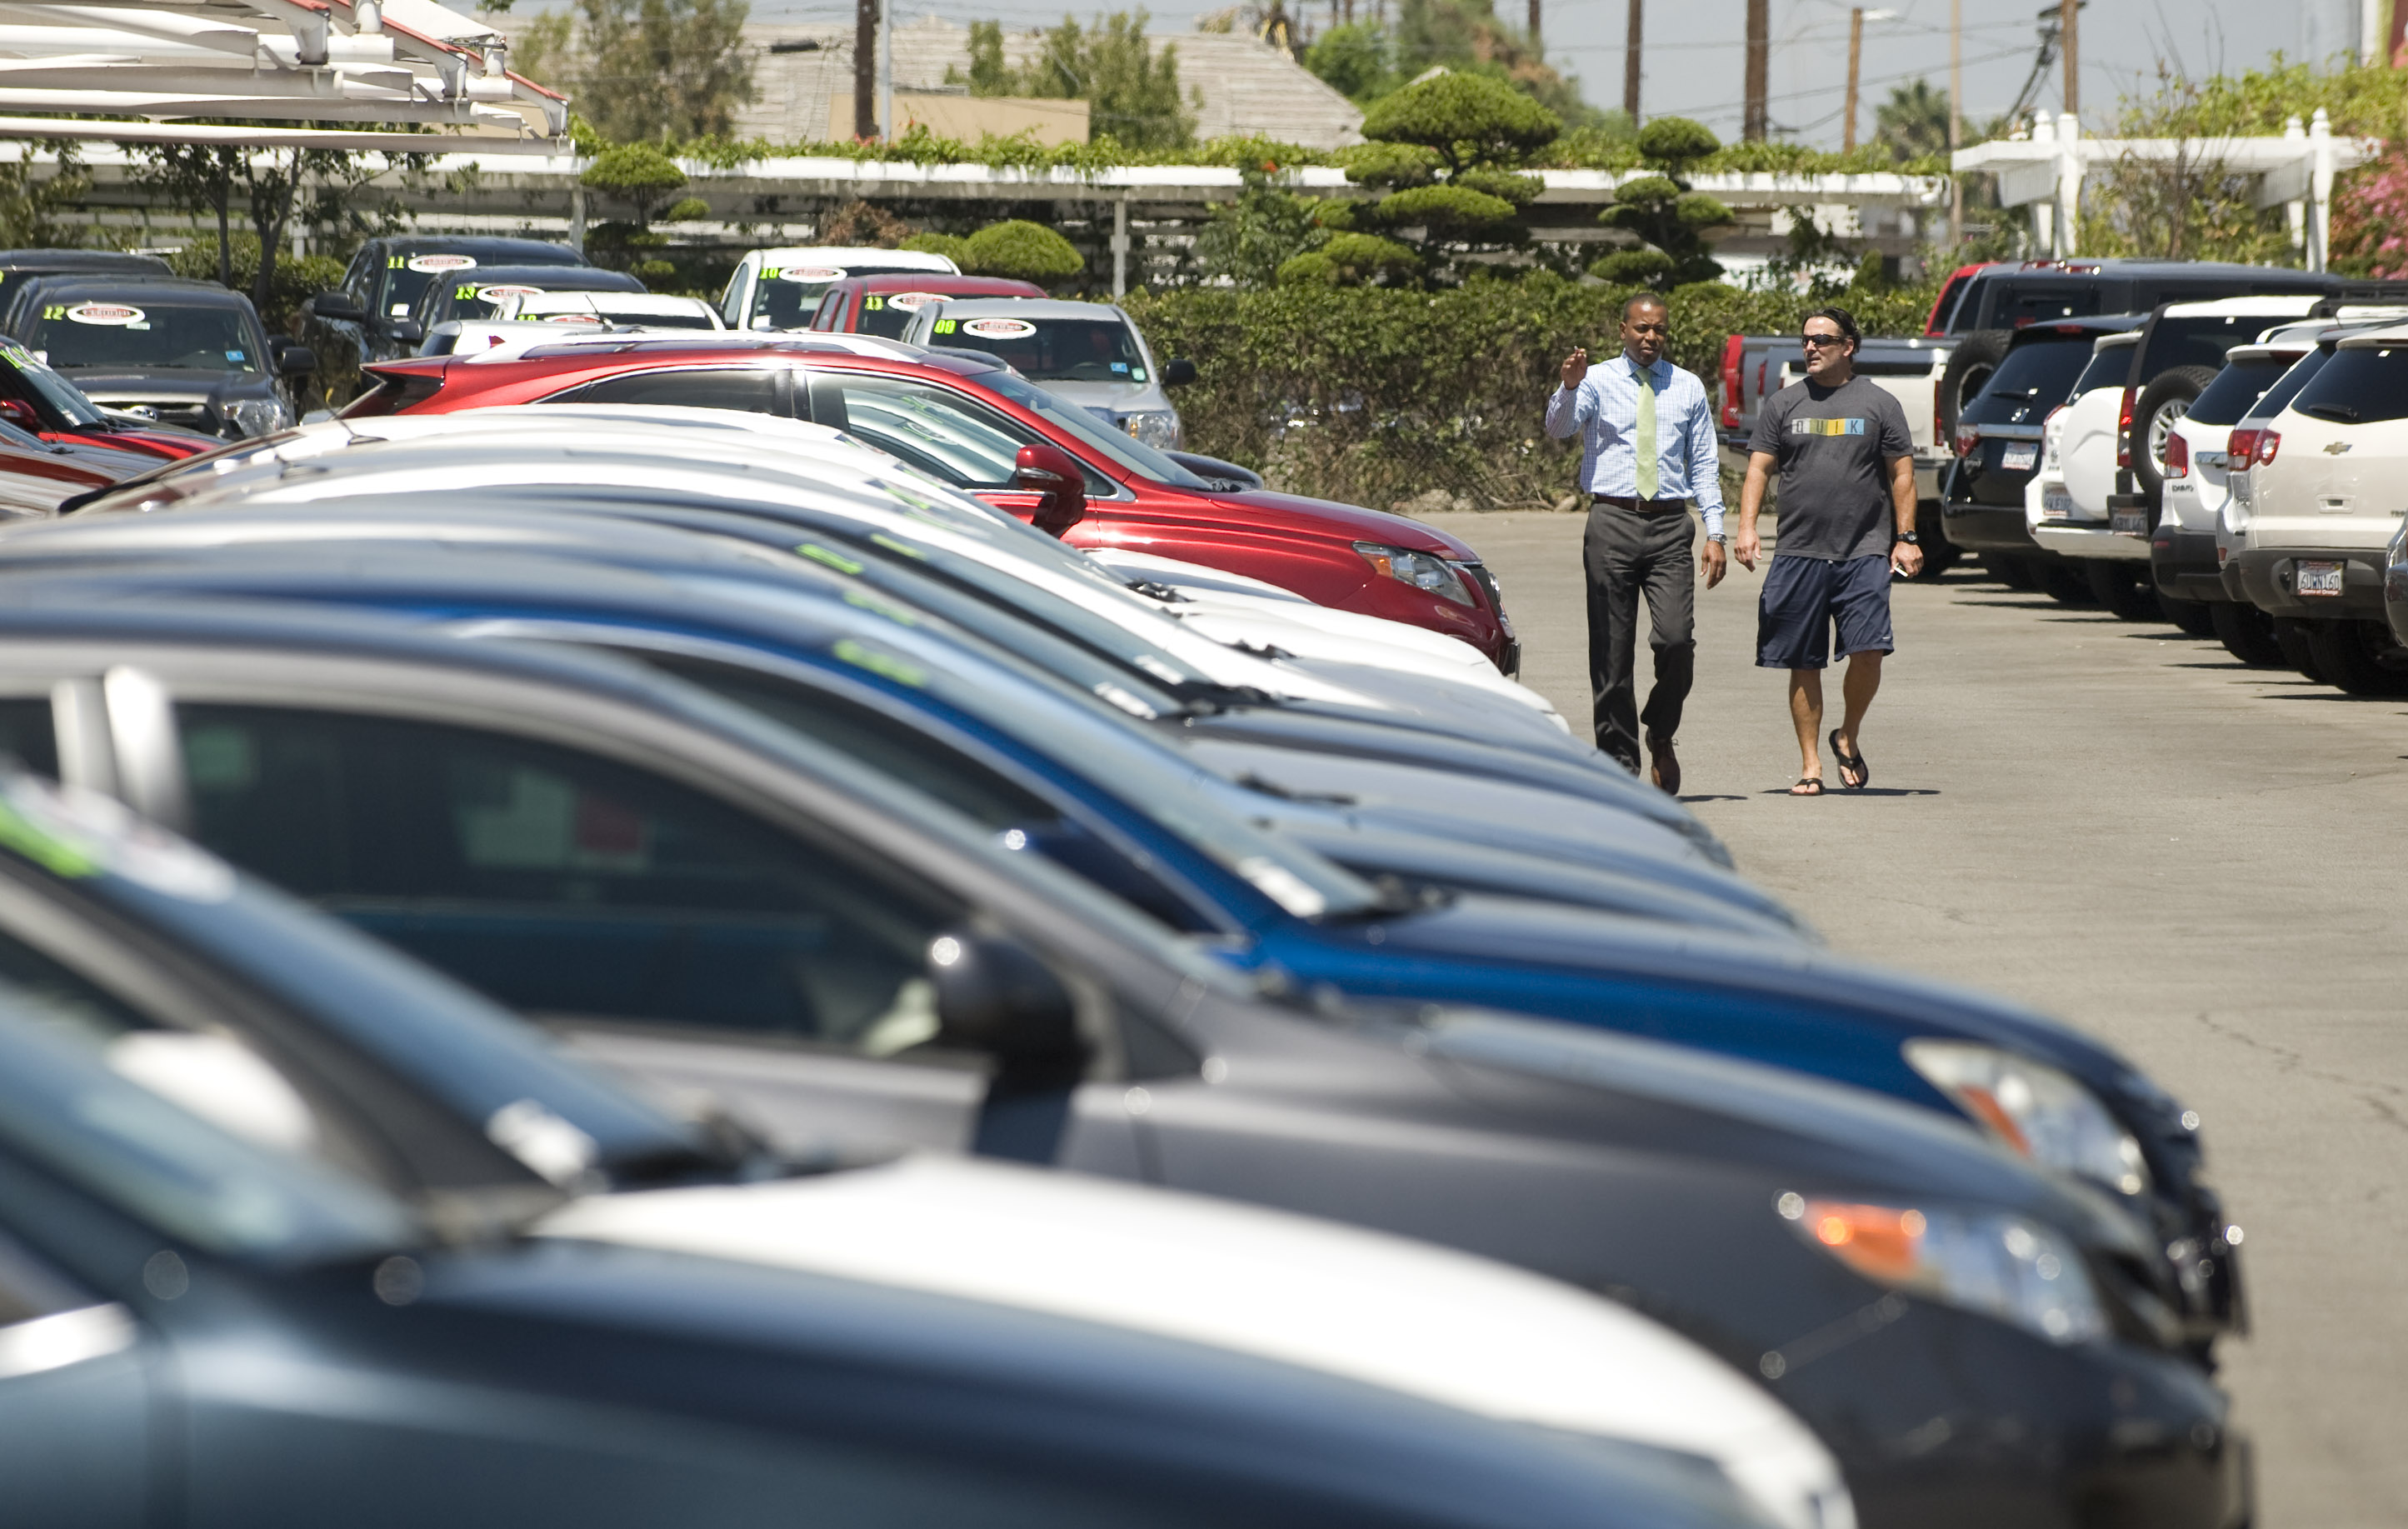 soggy weather in the beginning of the year is likely to blame for a dip in local auto sales which were down 1 percent in the first quarter the county s